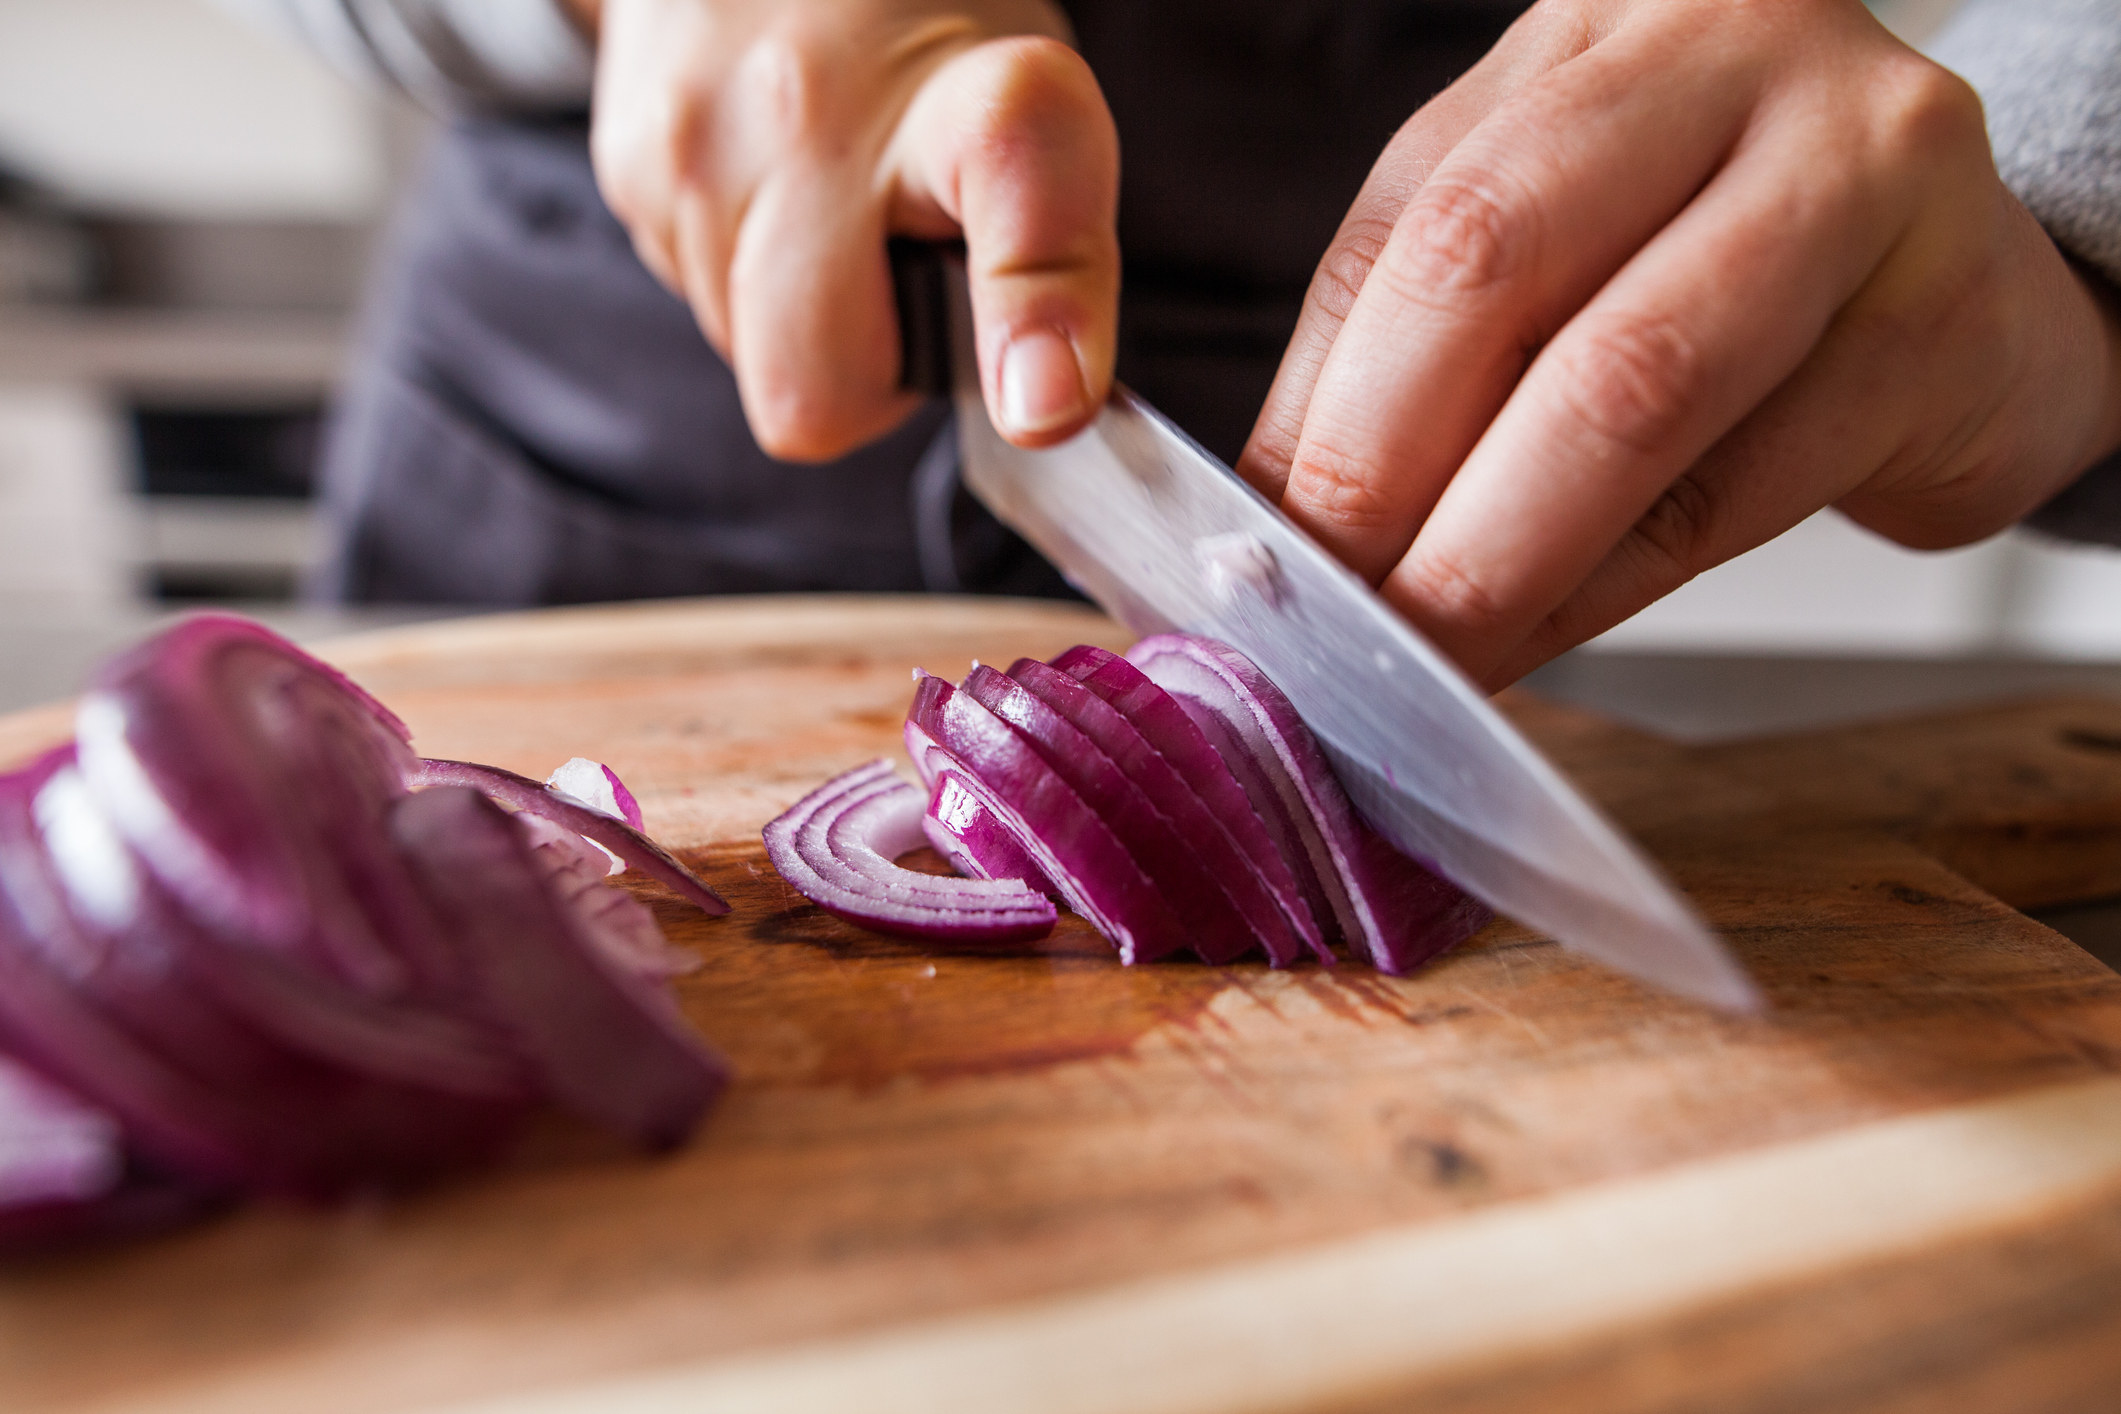 A woman chopping red onion.